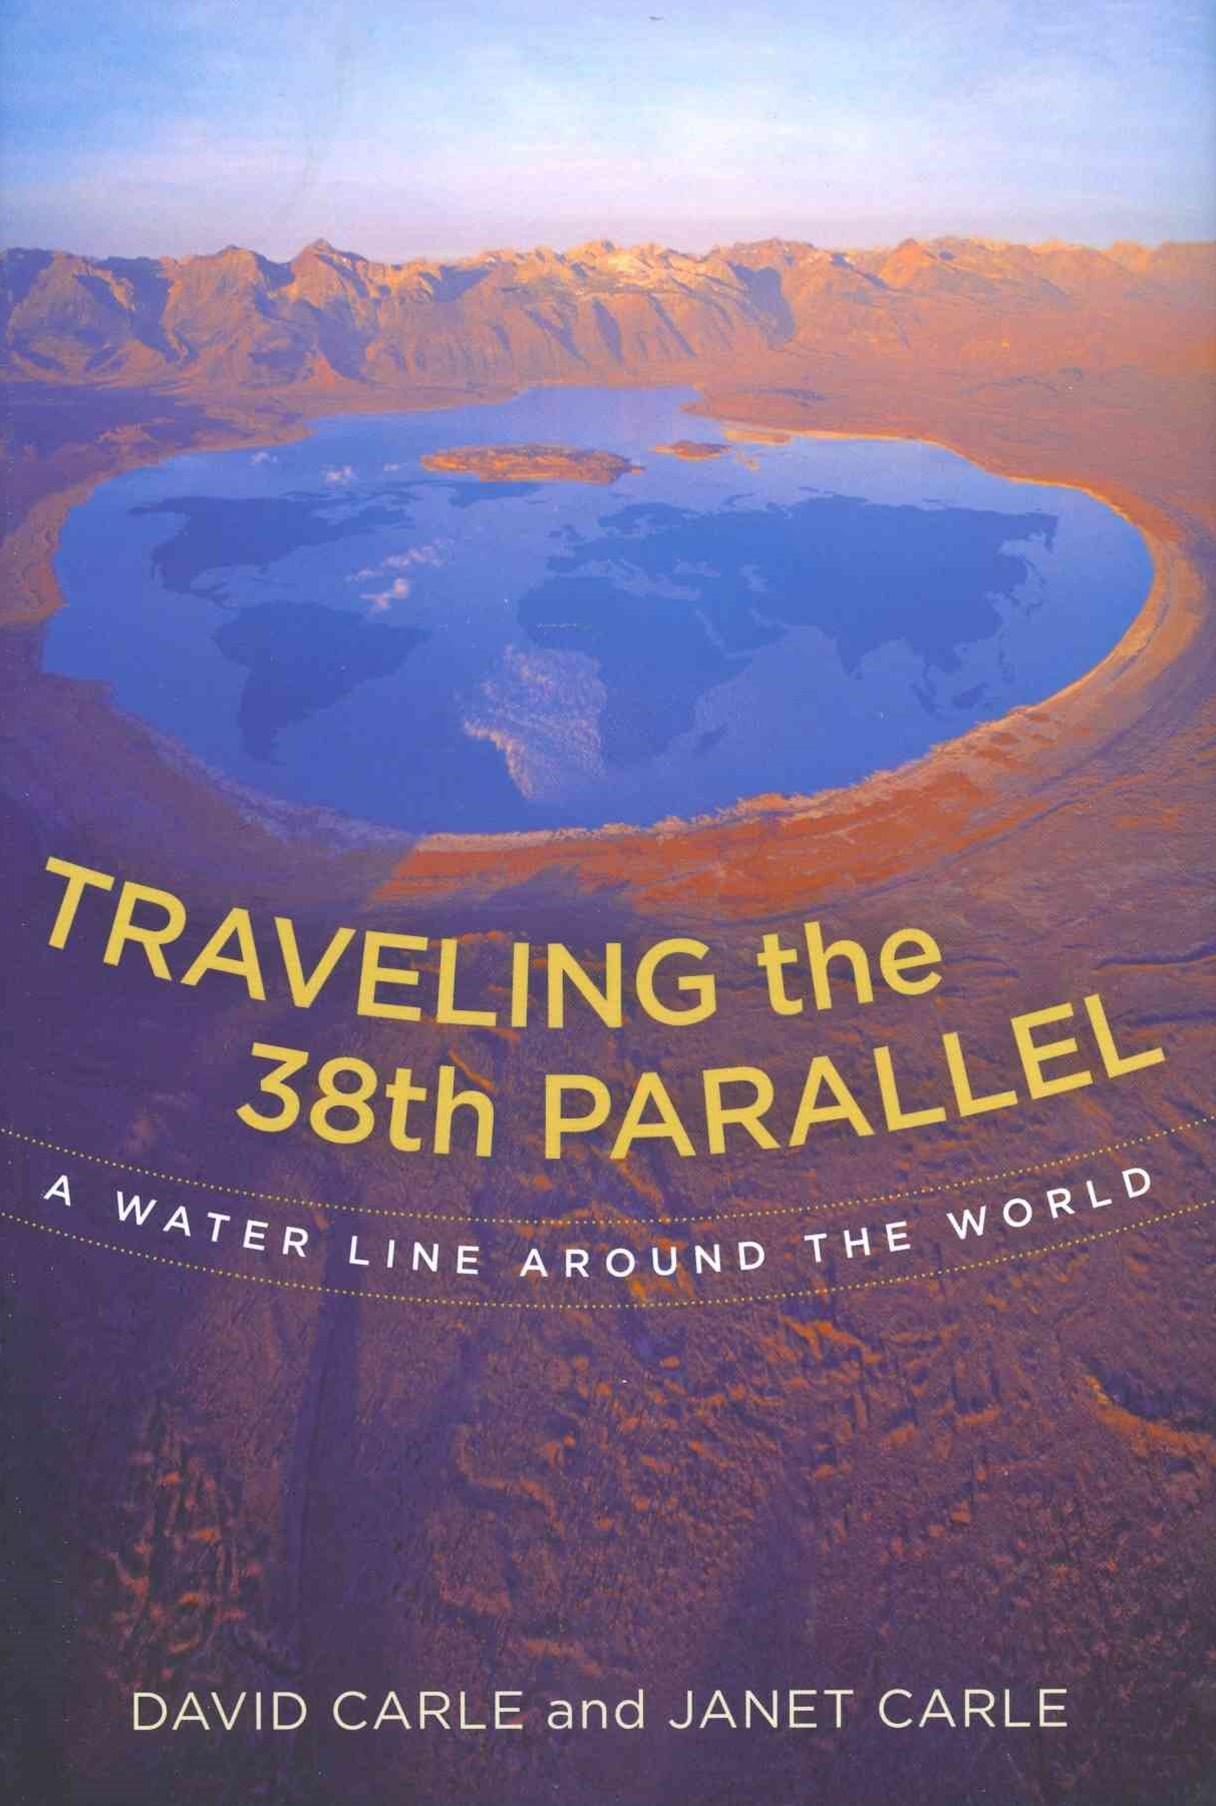 Traveling the 38th Parallel